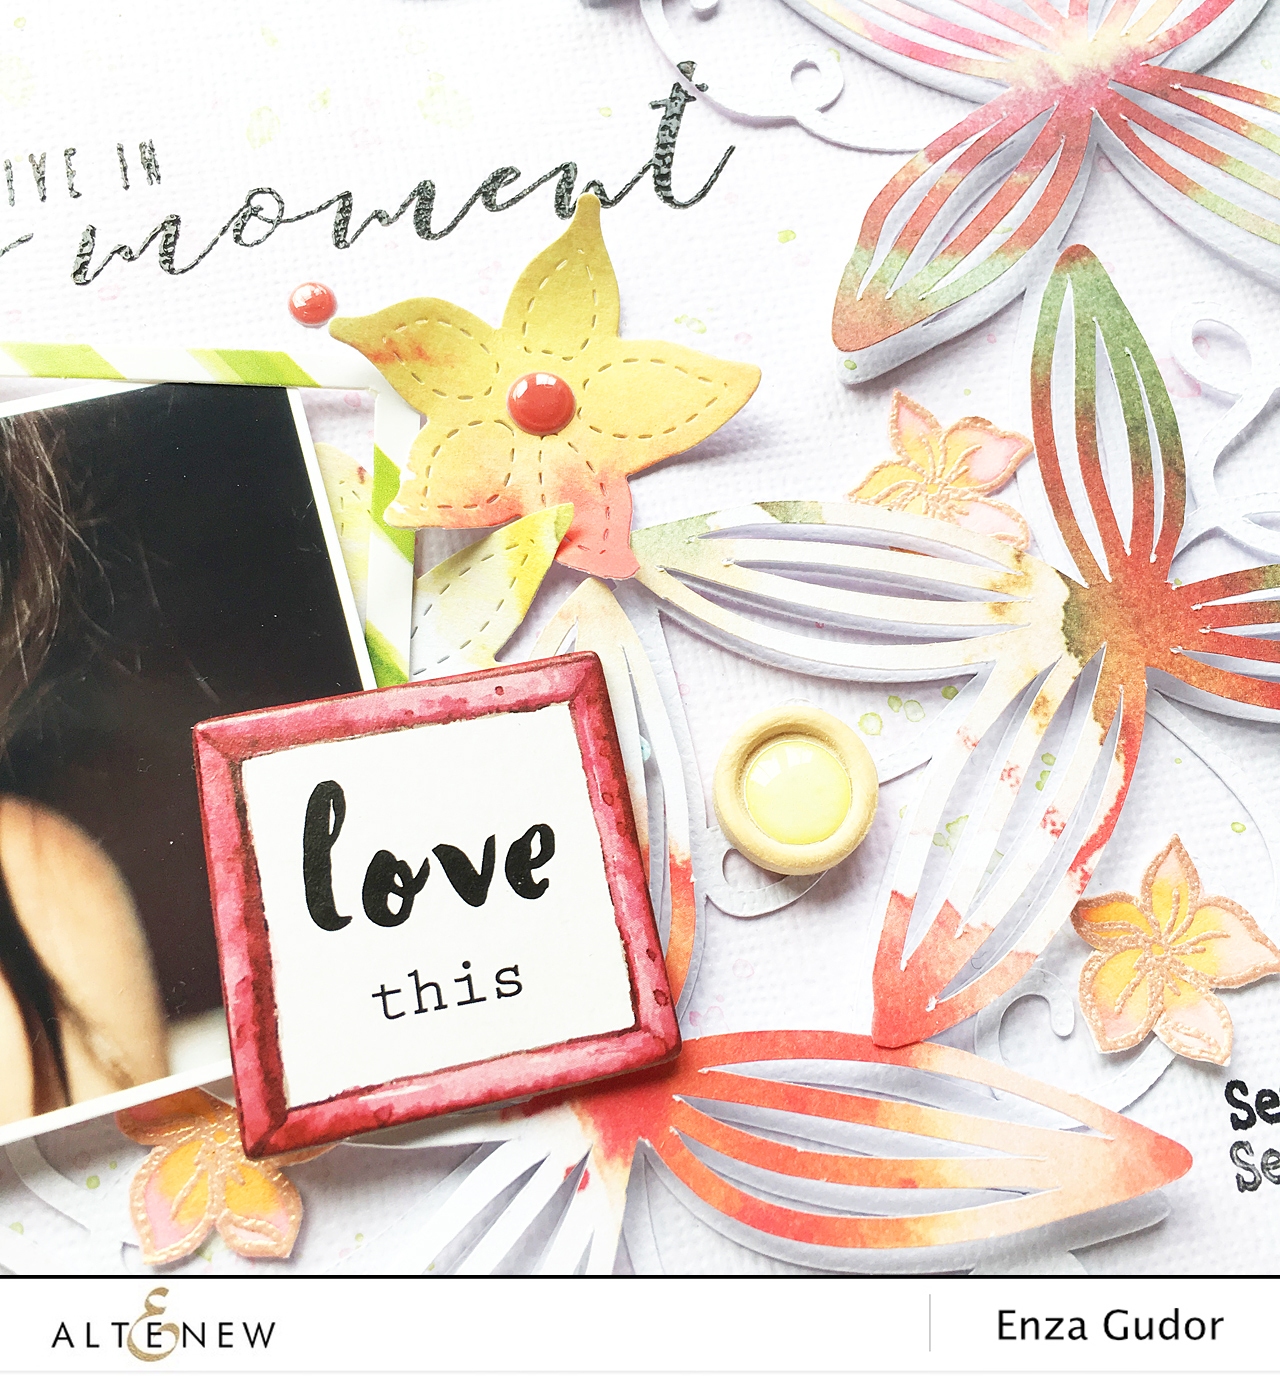 Achieving dimension on your layout. @altenewllc @enzamg #scrapbooking #memorykeeping #AltenewReflectionKit